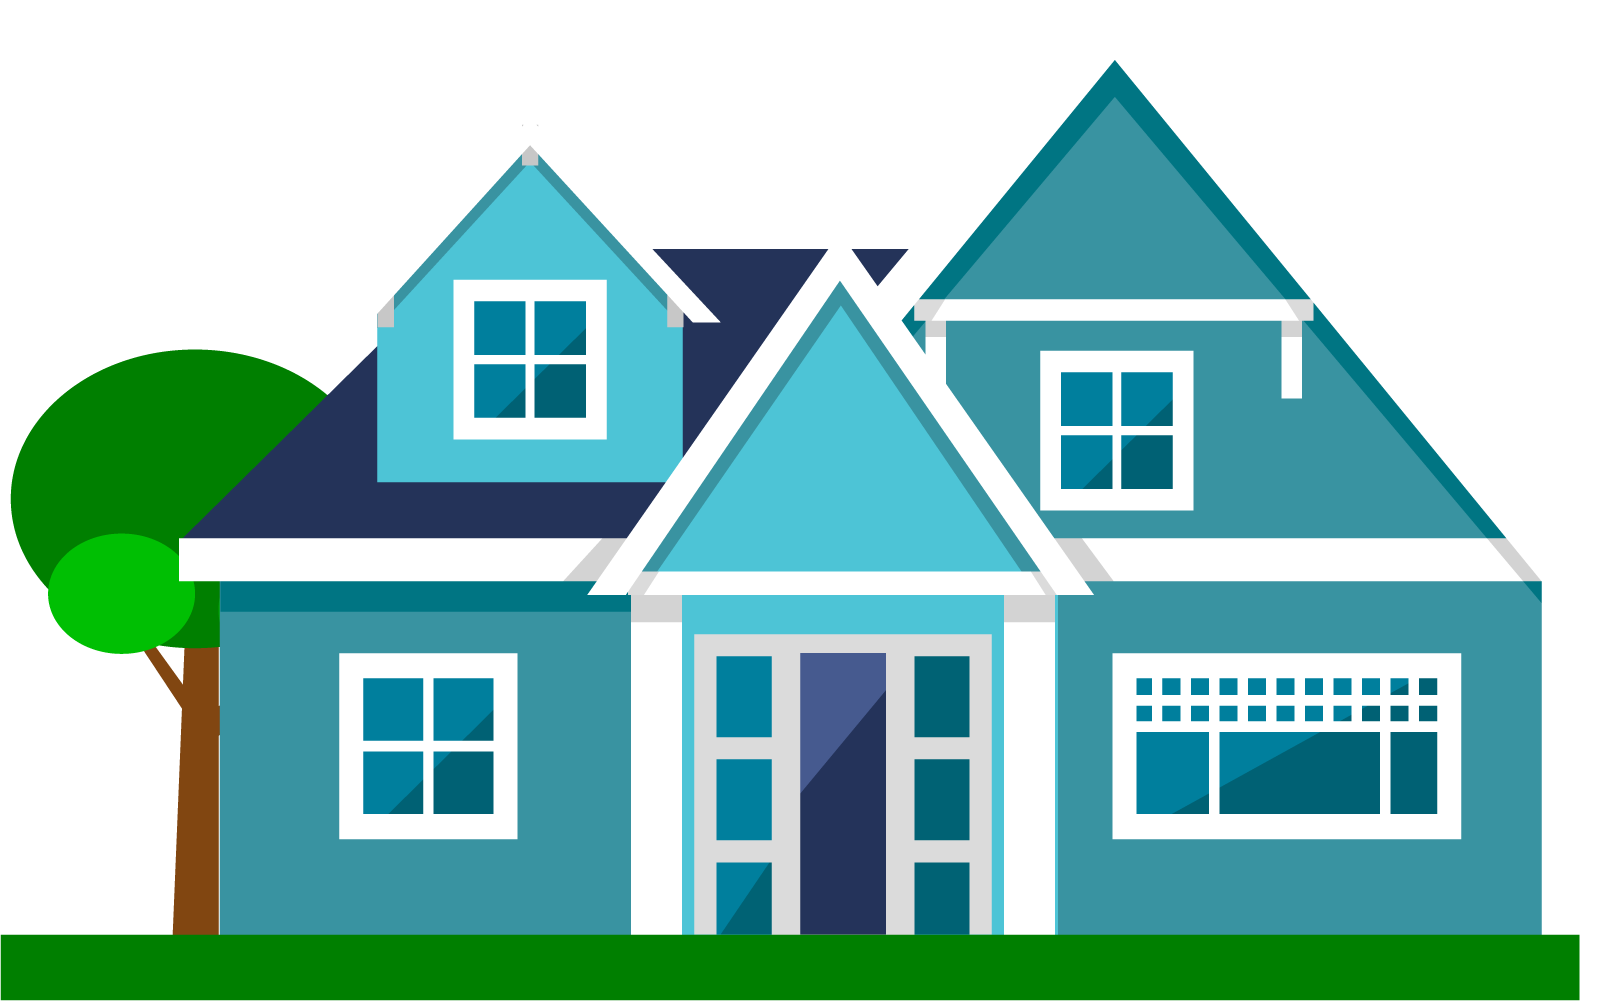 Collection-of-various-houses 3.png